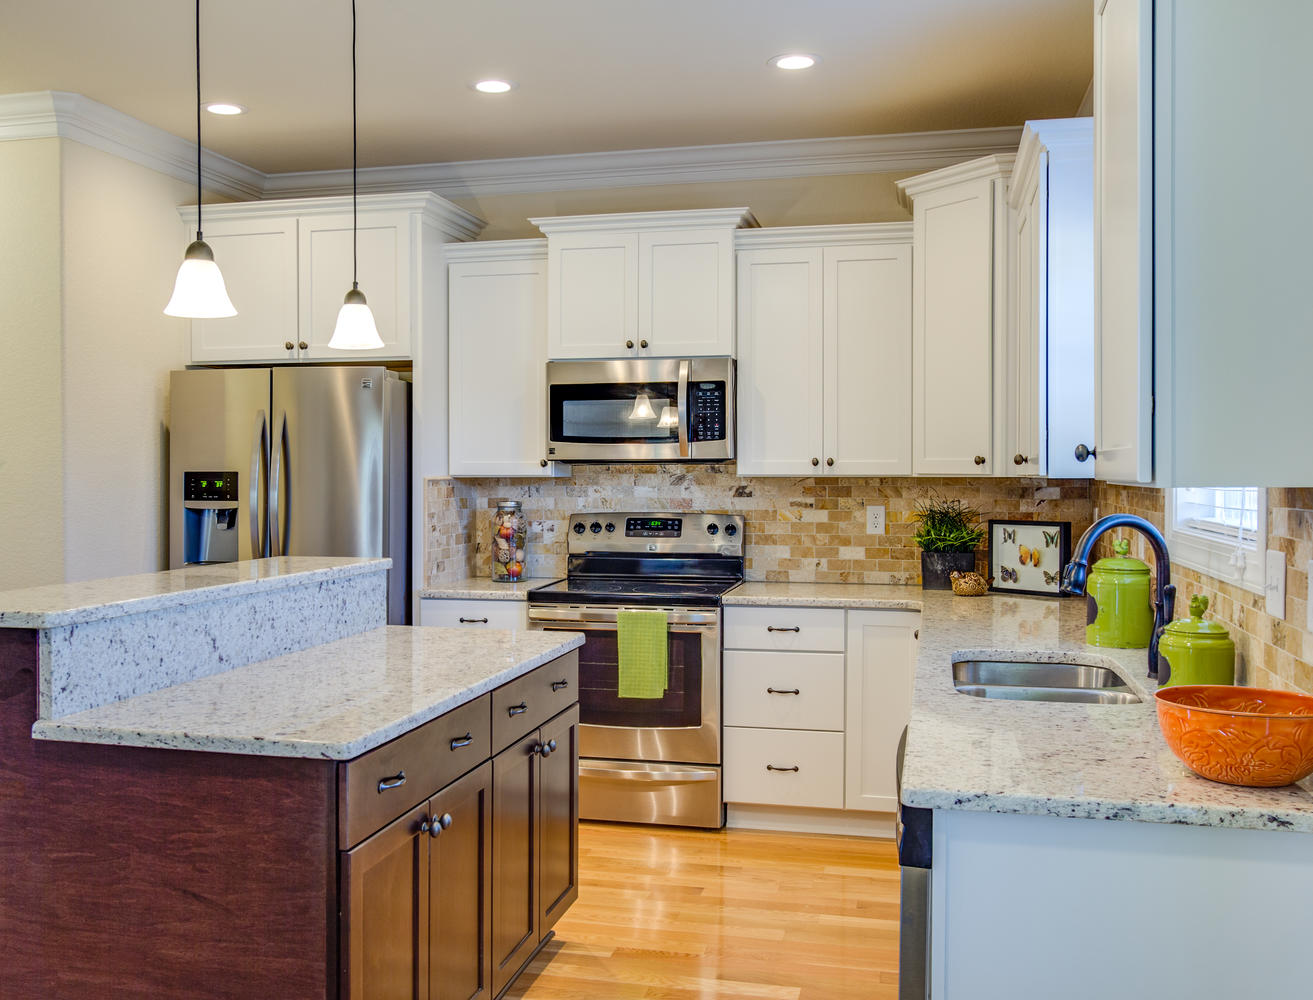 The August model beautiful kitchen with granite and stainless steel appliances AB Homes